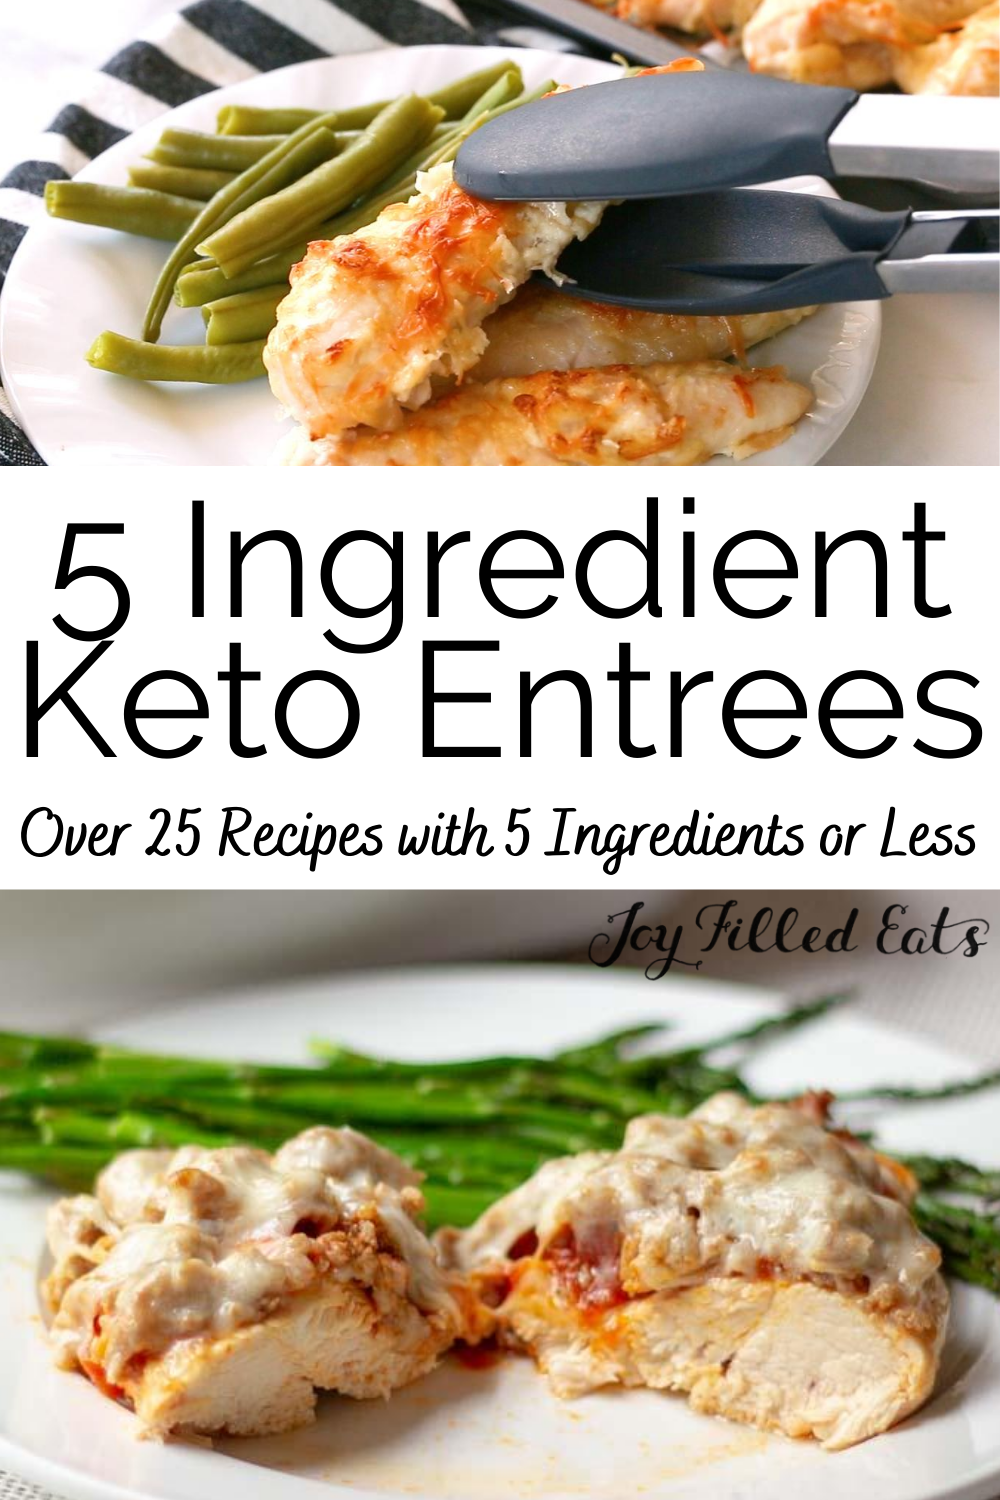 Easy Keto Meals 5 Ingredients Or Less Over 25 Entree Recipes Dinner Recipes Healthy Low Carb Recipes Keto Recipes